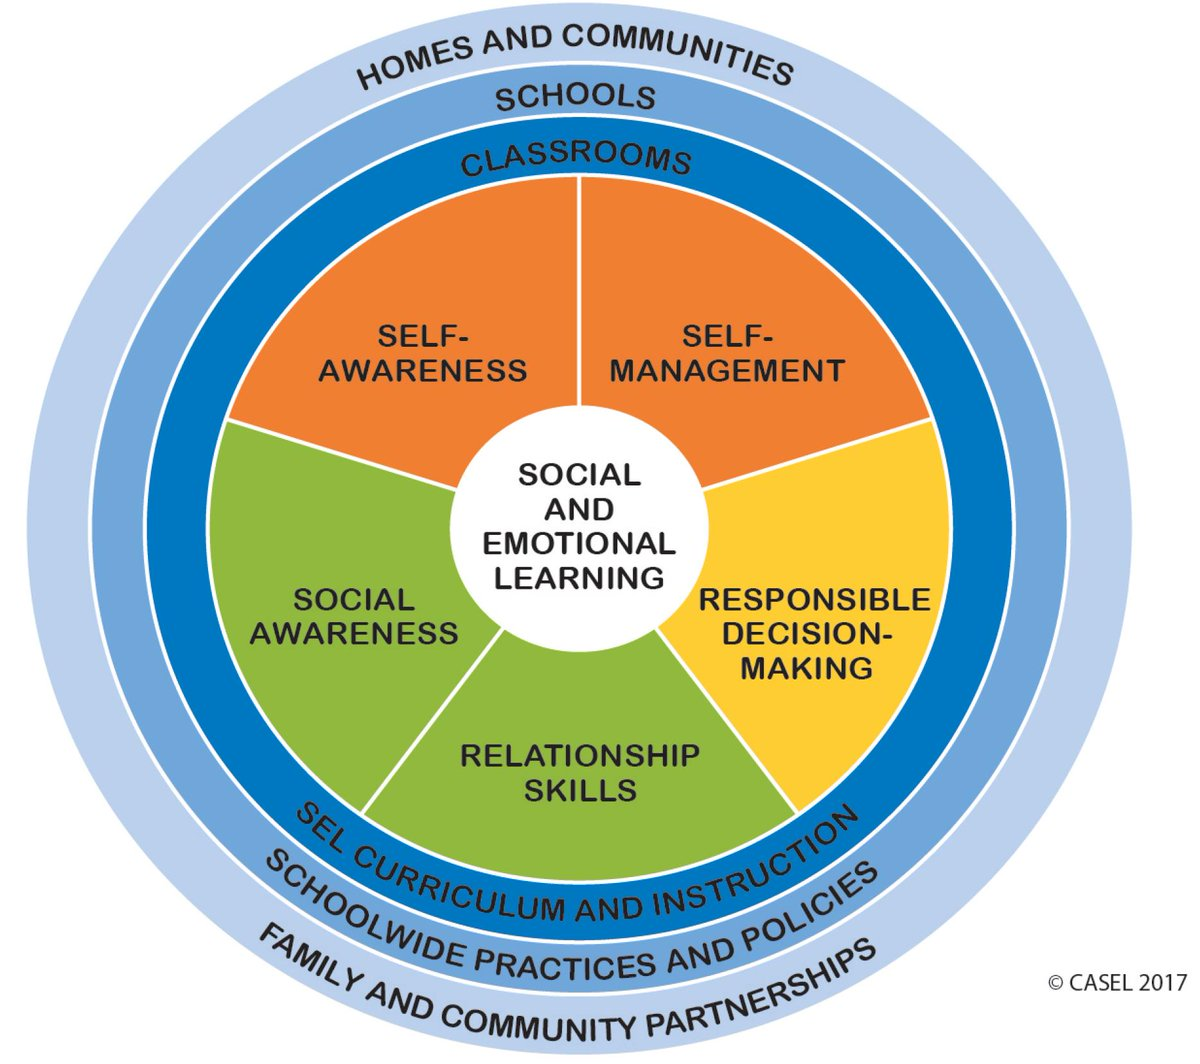 Stay tuned! All this week we'll be exploring the #5competencies of SEL.